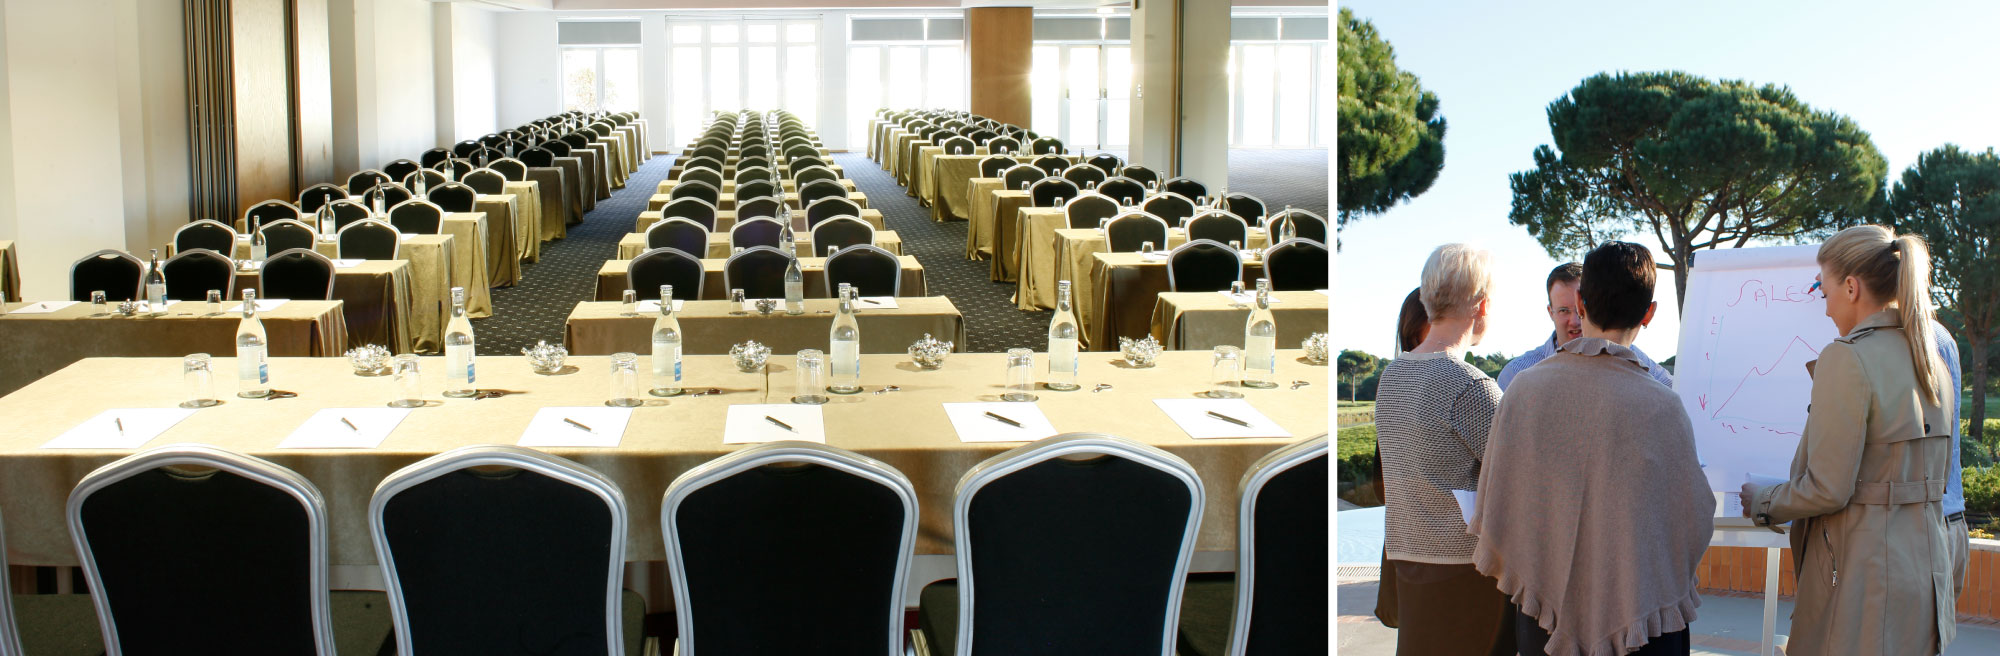 Meeting Rooms, Lisbon, Hotel Quinta da Marinha Resort